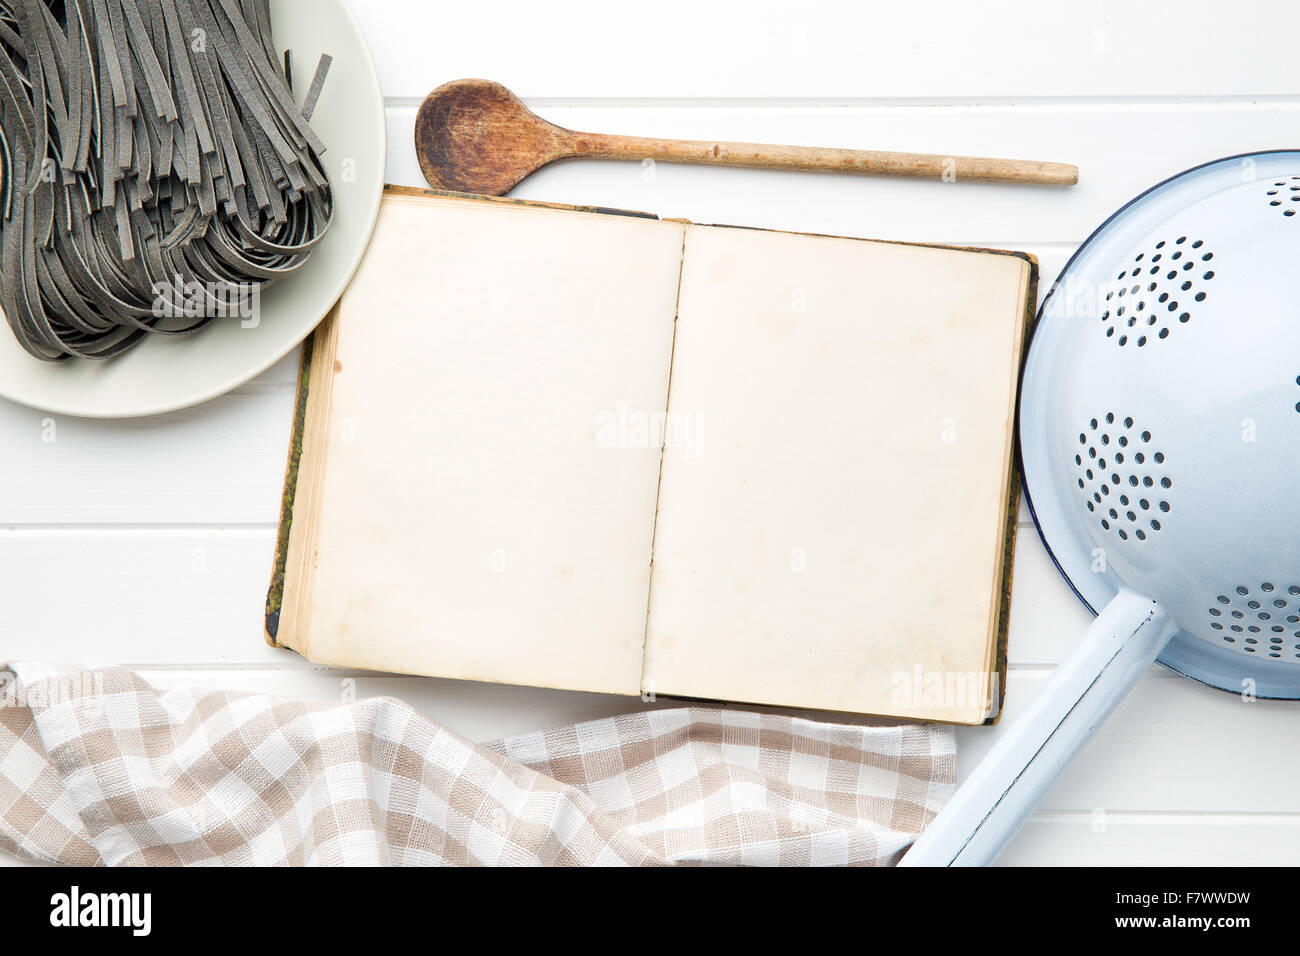 cookbook and black noodles with squid sepia ink on white table - Stock Image